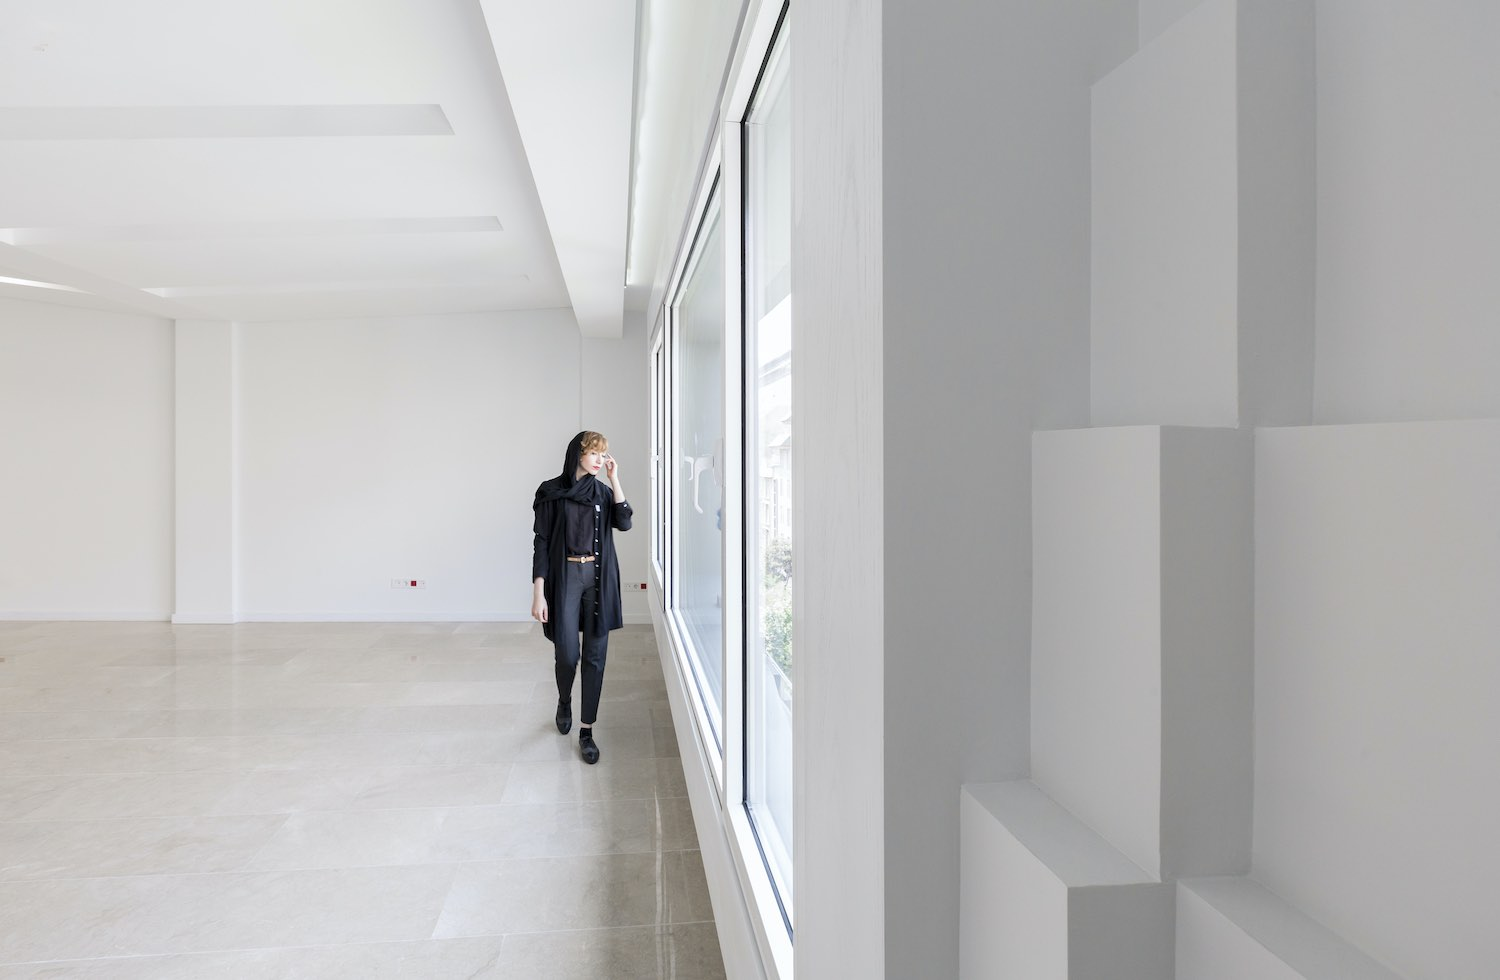 a woman with hijab walking in an empty room